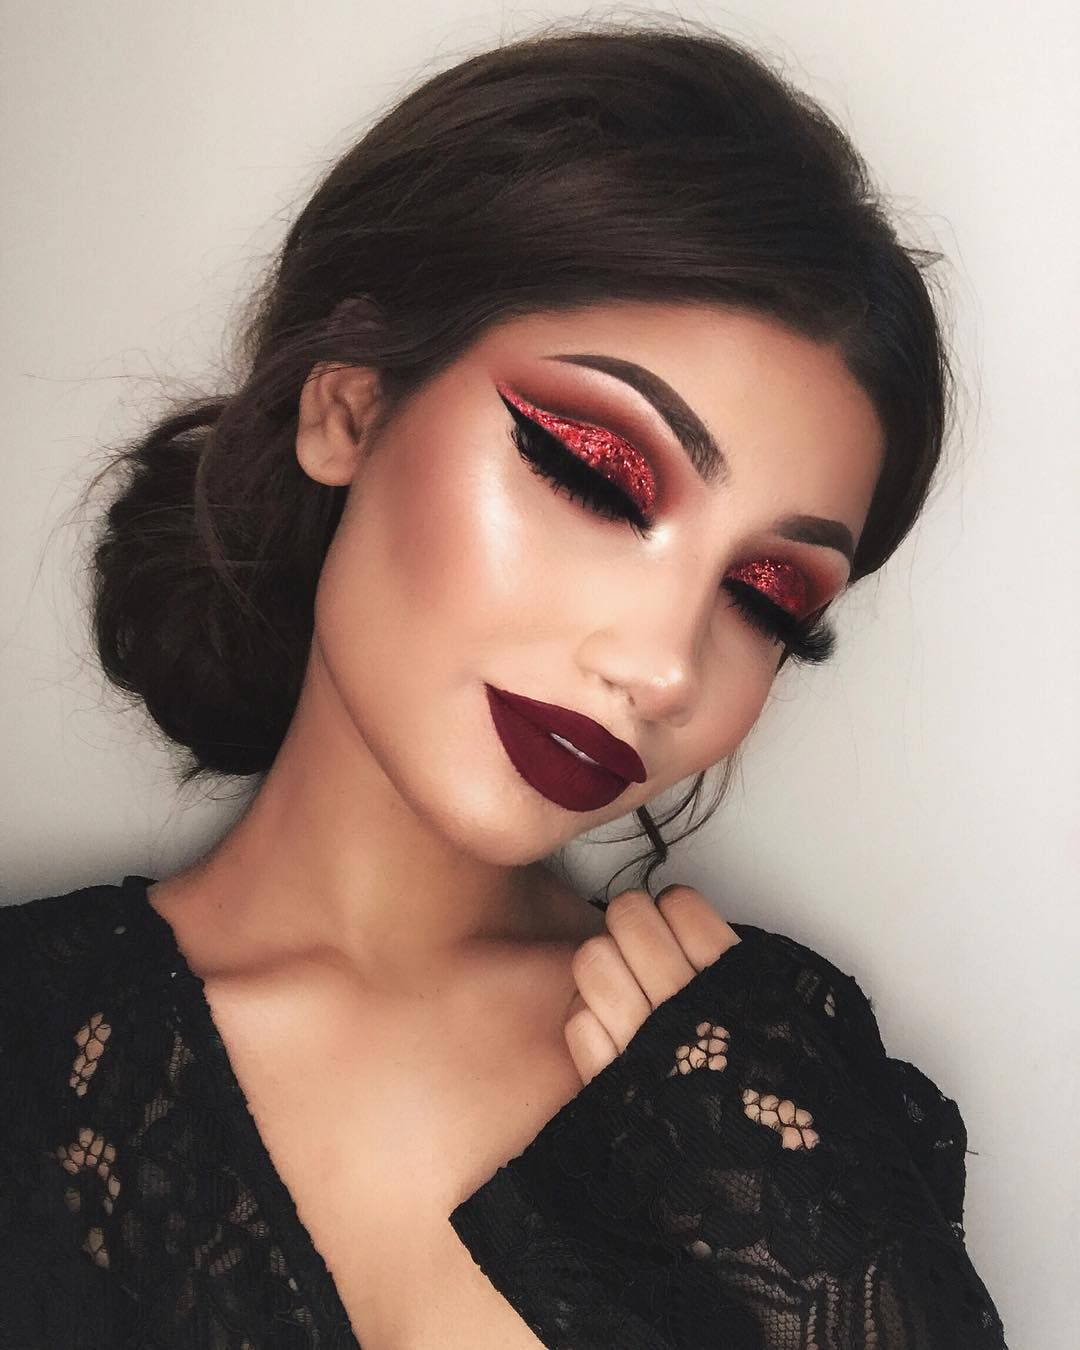 44.1k Likes, 288 Comments - ALINA (@makeupbyalinna) on ...